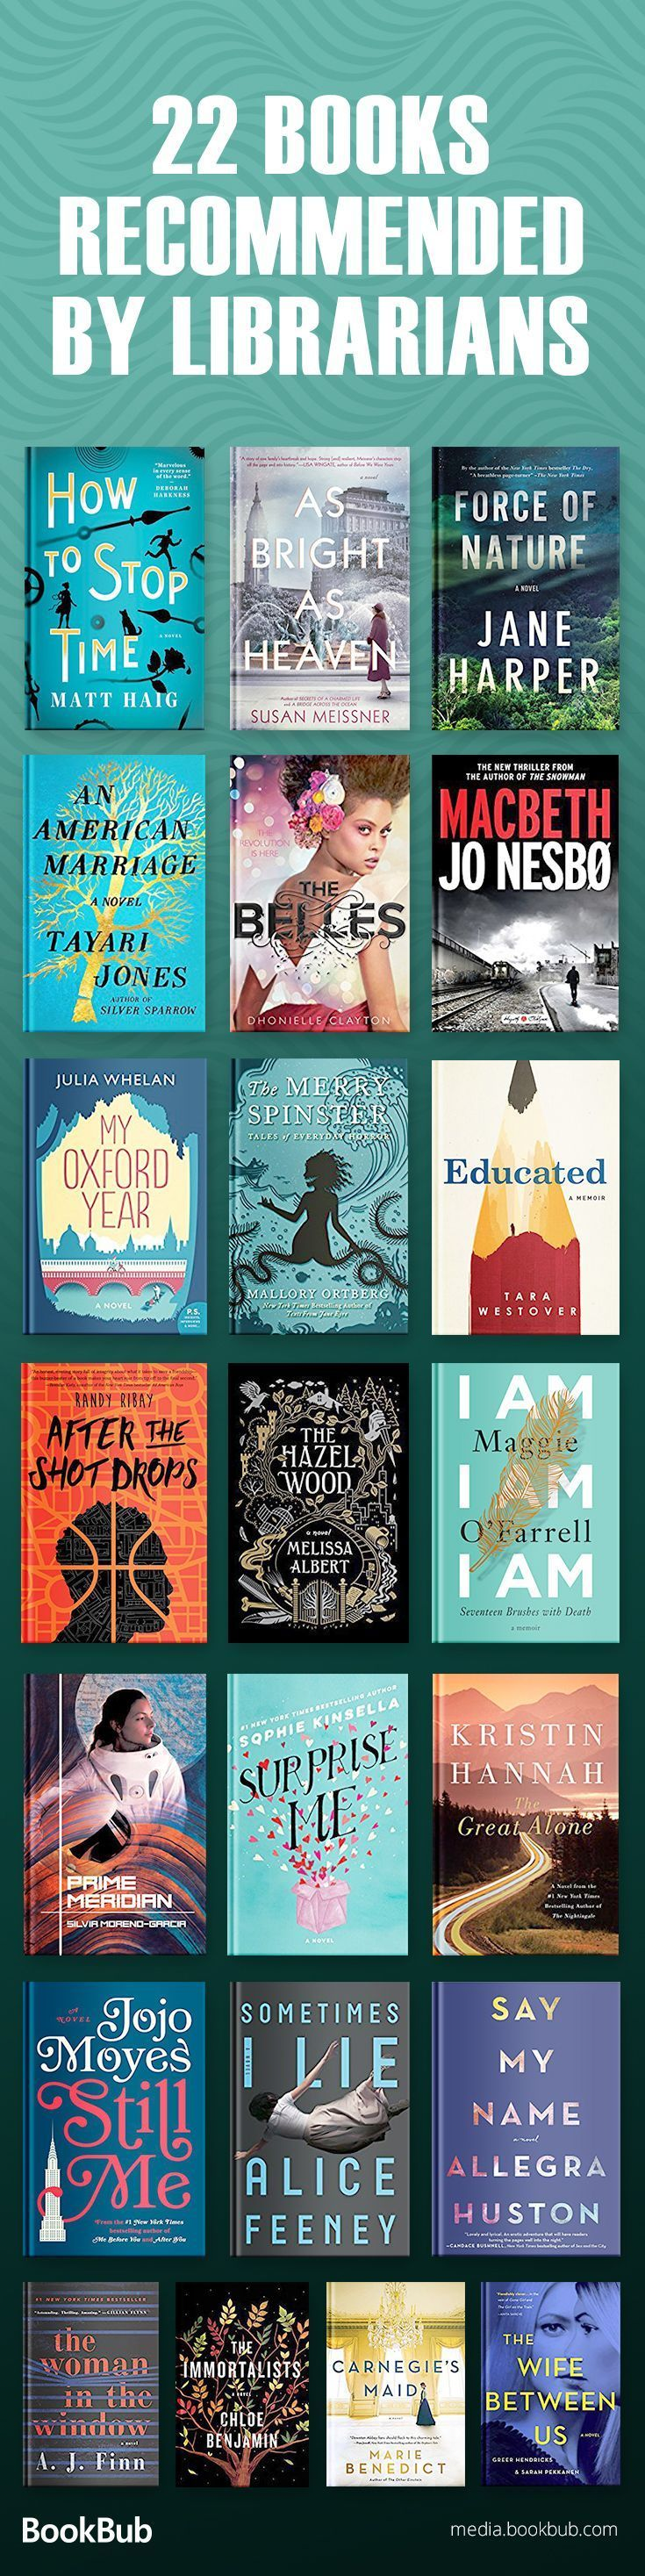 A great reading list of books recommended by librarians, including books for women, men, and teens, thriller books, romantic books, mysteries, twisty novels, and more. #BooksLibros